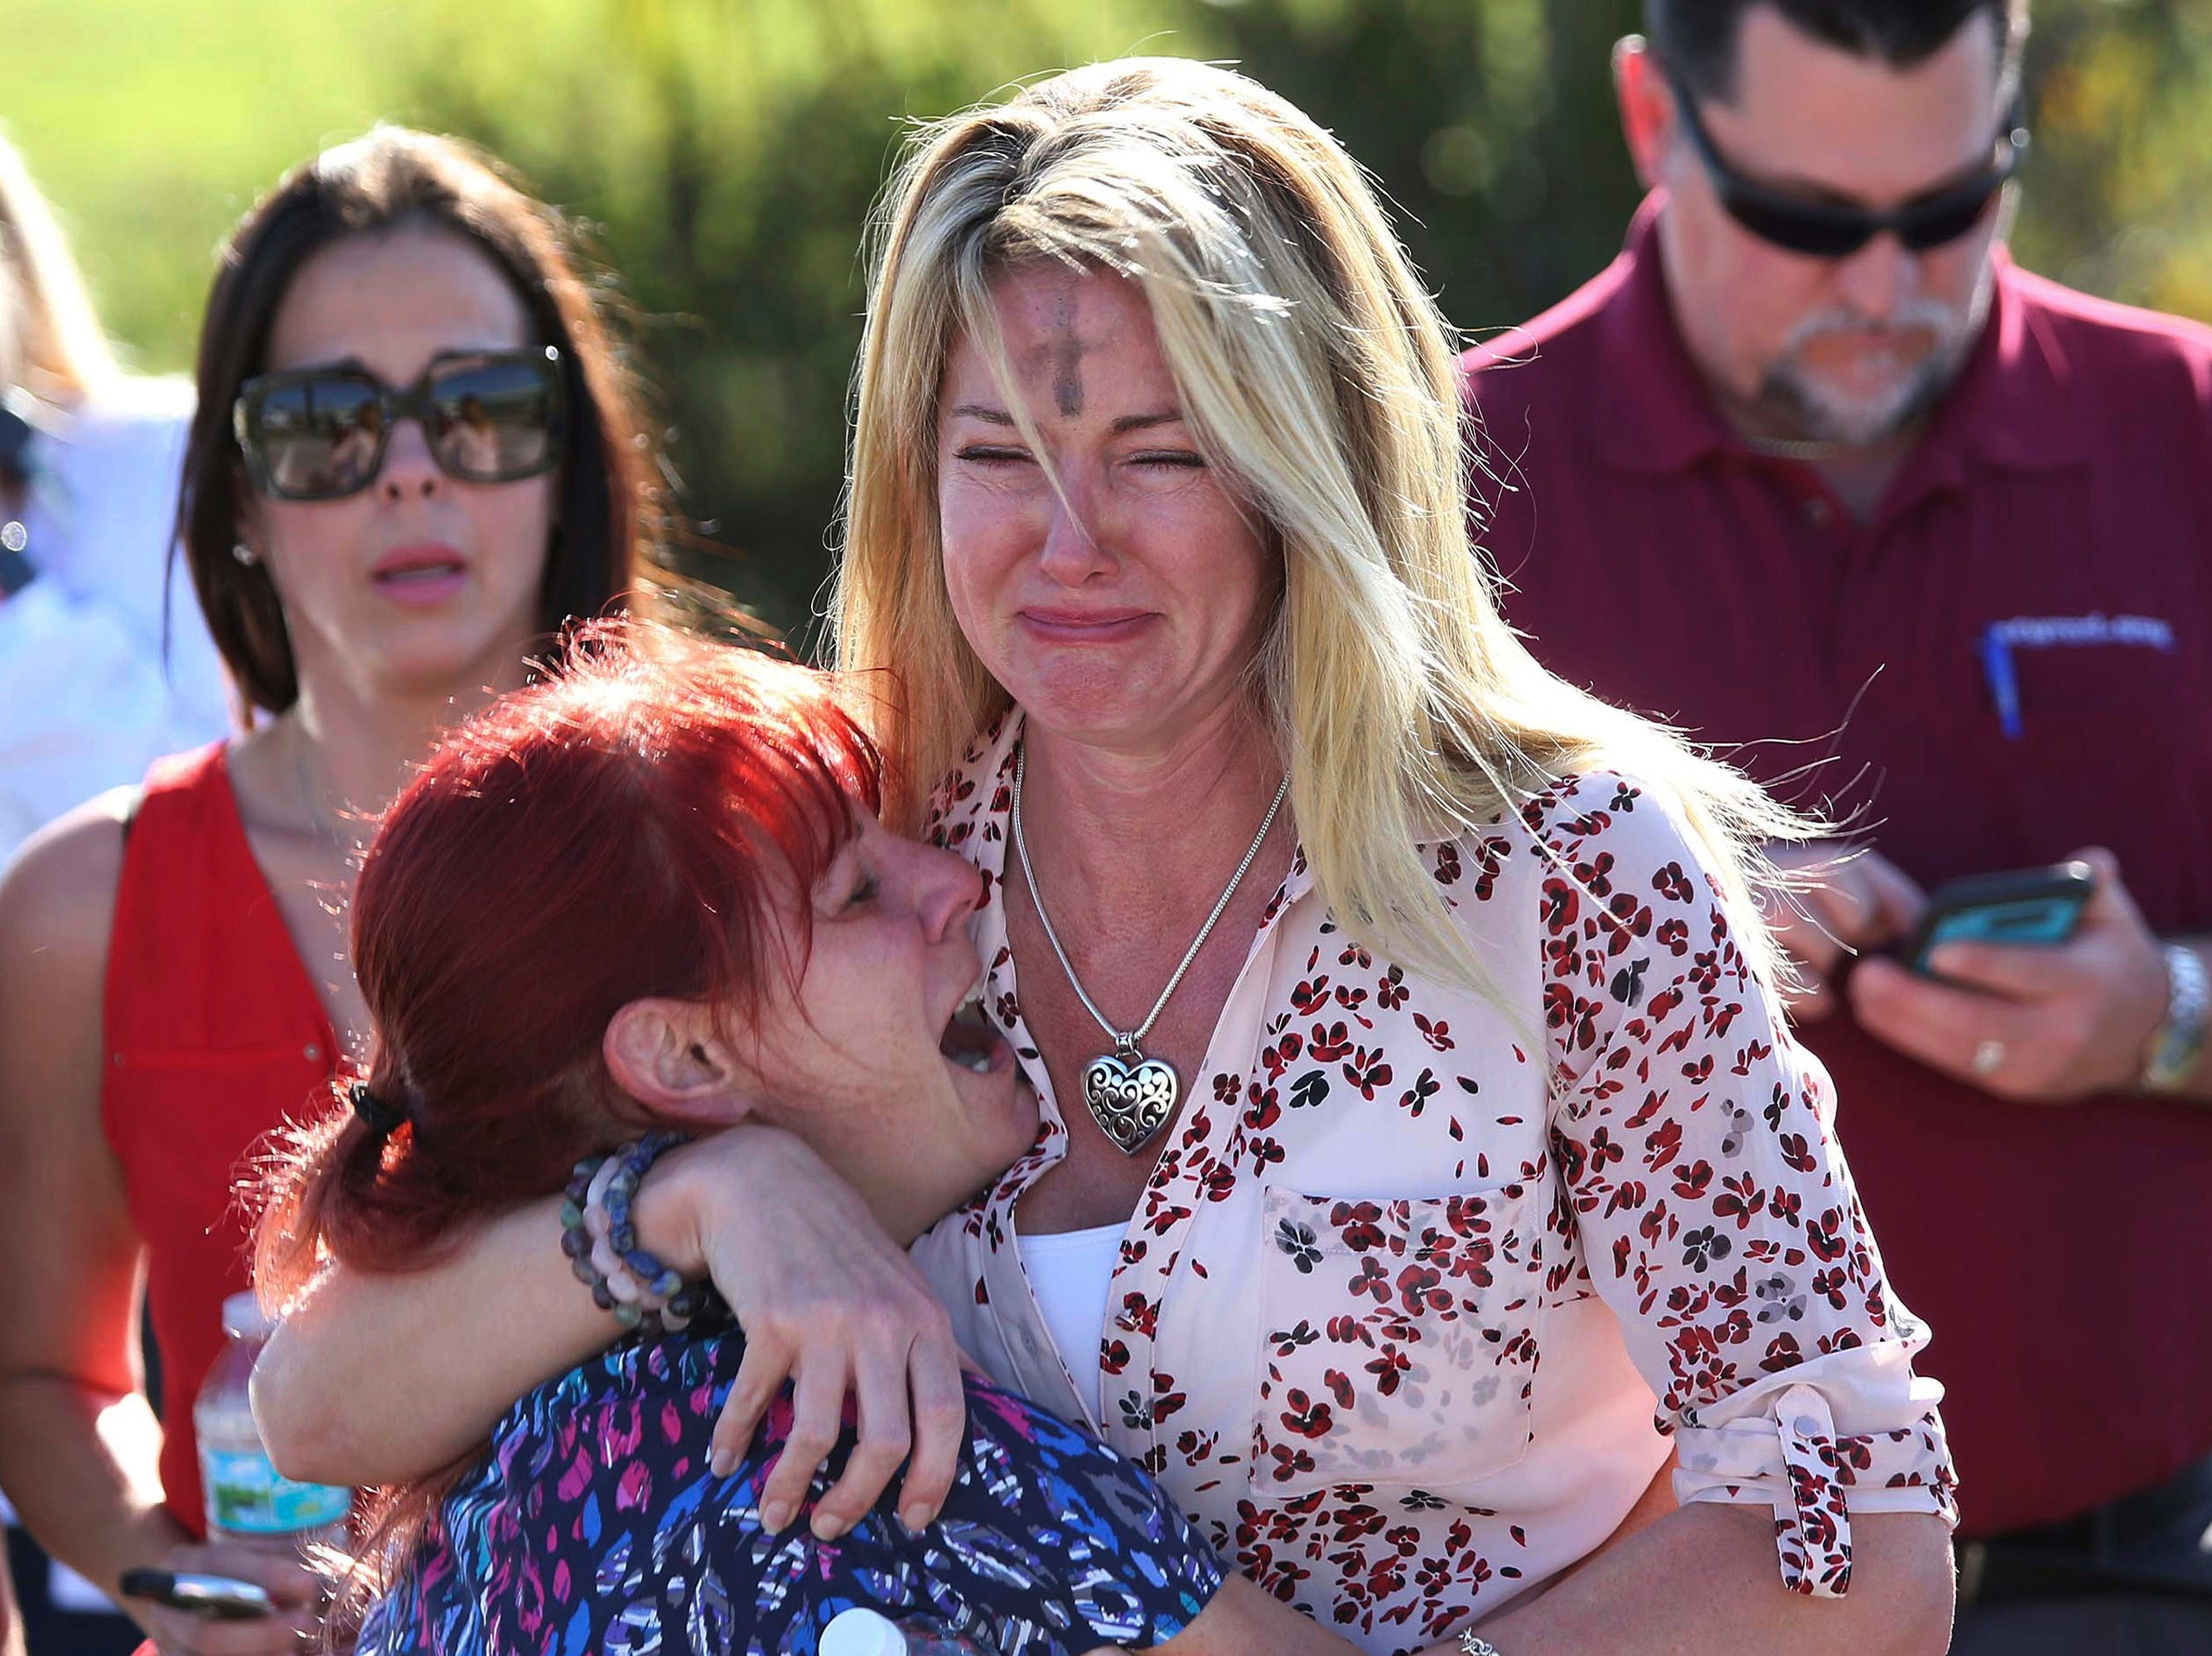 Parents wait for news of their loved ones after a mass shooting at Marjory Stoneman Douglas High School in Parkland, Fla., on Feb. 14, 2018.